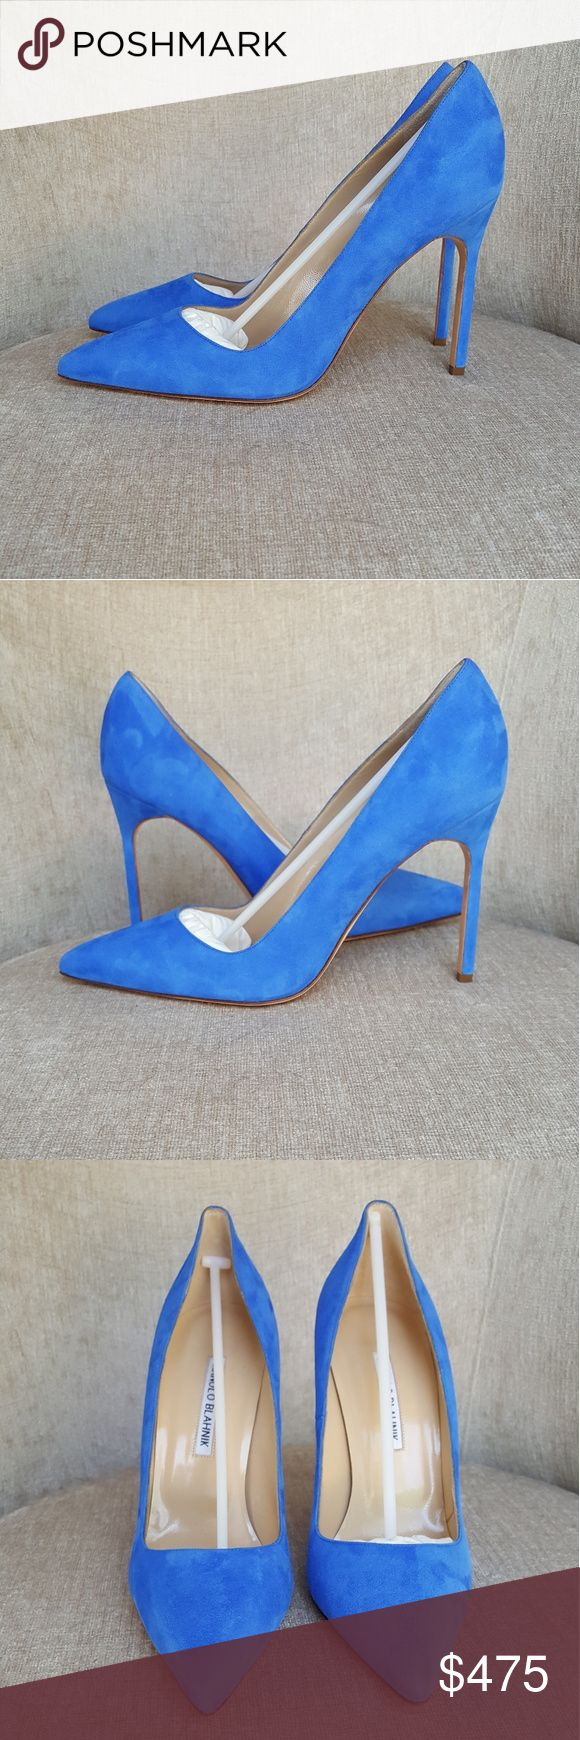 NIB Manolo Blahnik Blue Suede BB Pumps US 10 / Euro 40.  New with box and dustbags.  Heels 4 inches. Manolo Blahnik Shoes Heels